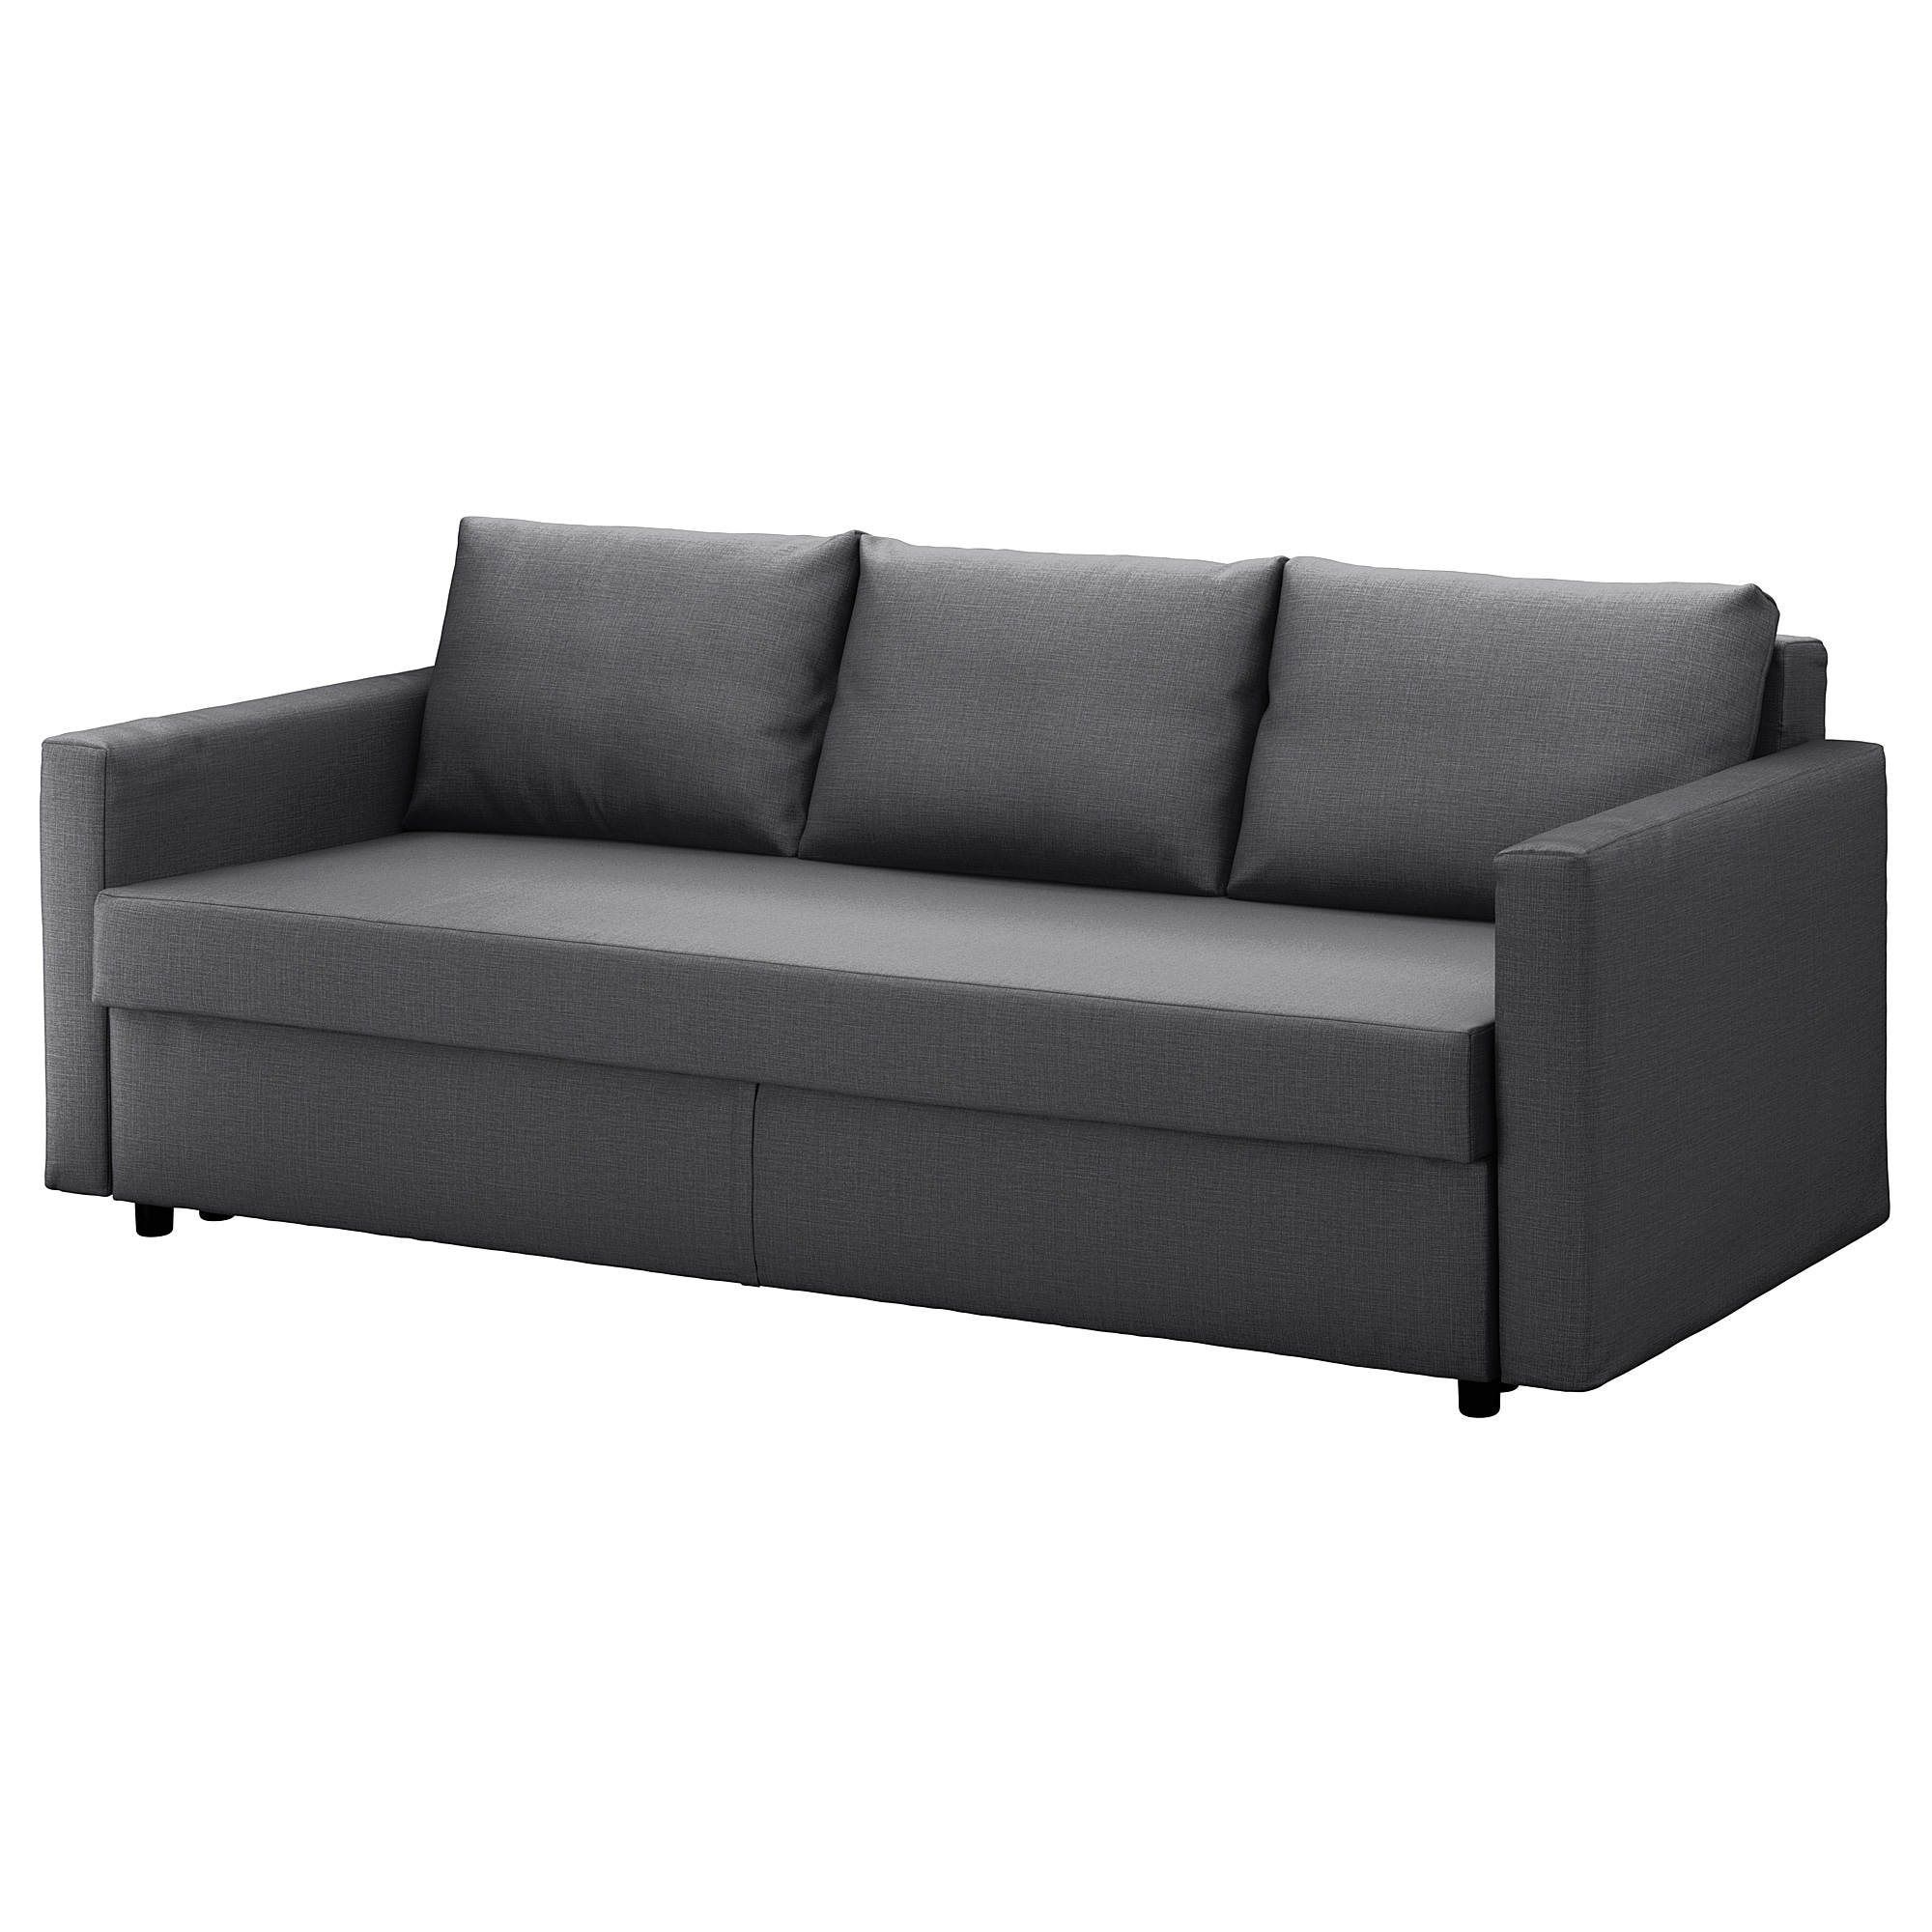 Friheten Convertible 3 Places Skiftebo Gris Fonc Ikea # Meuble Tv Gris Beton